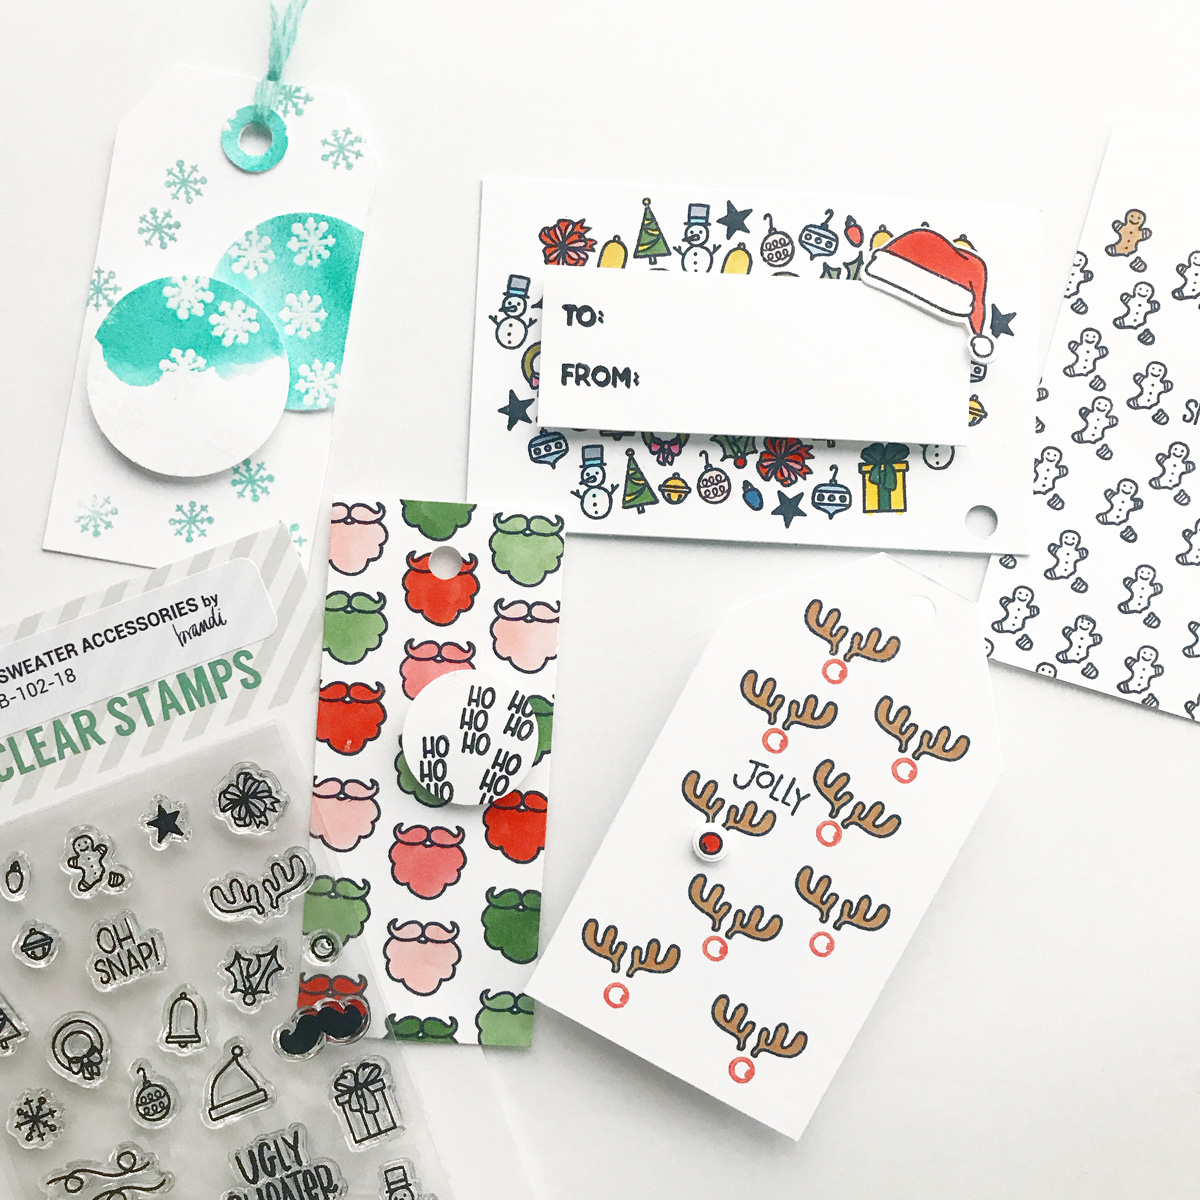 A collection of DIY Holiday Tags using Essentials by Ellen stamps designed by Brandi Kincaid